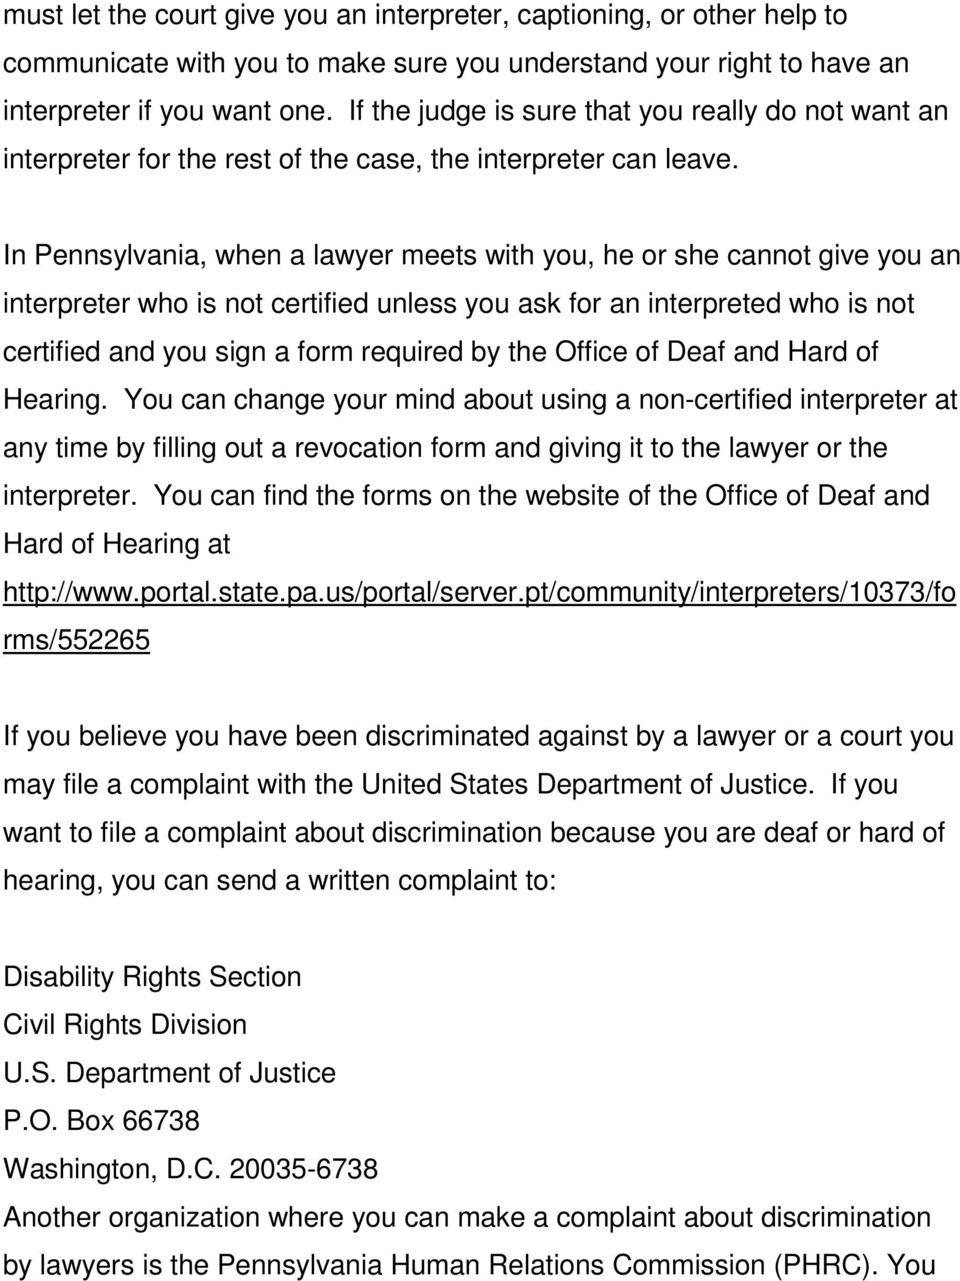 In Pennsylvania, when a lawyer meets with you, he or she cannot give you an interpreter who is not certified unless you ask for an interpreted who is not certified and you sign a form required by the